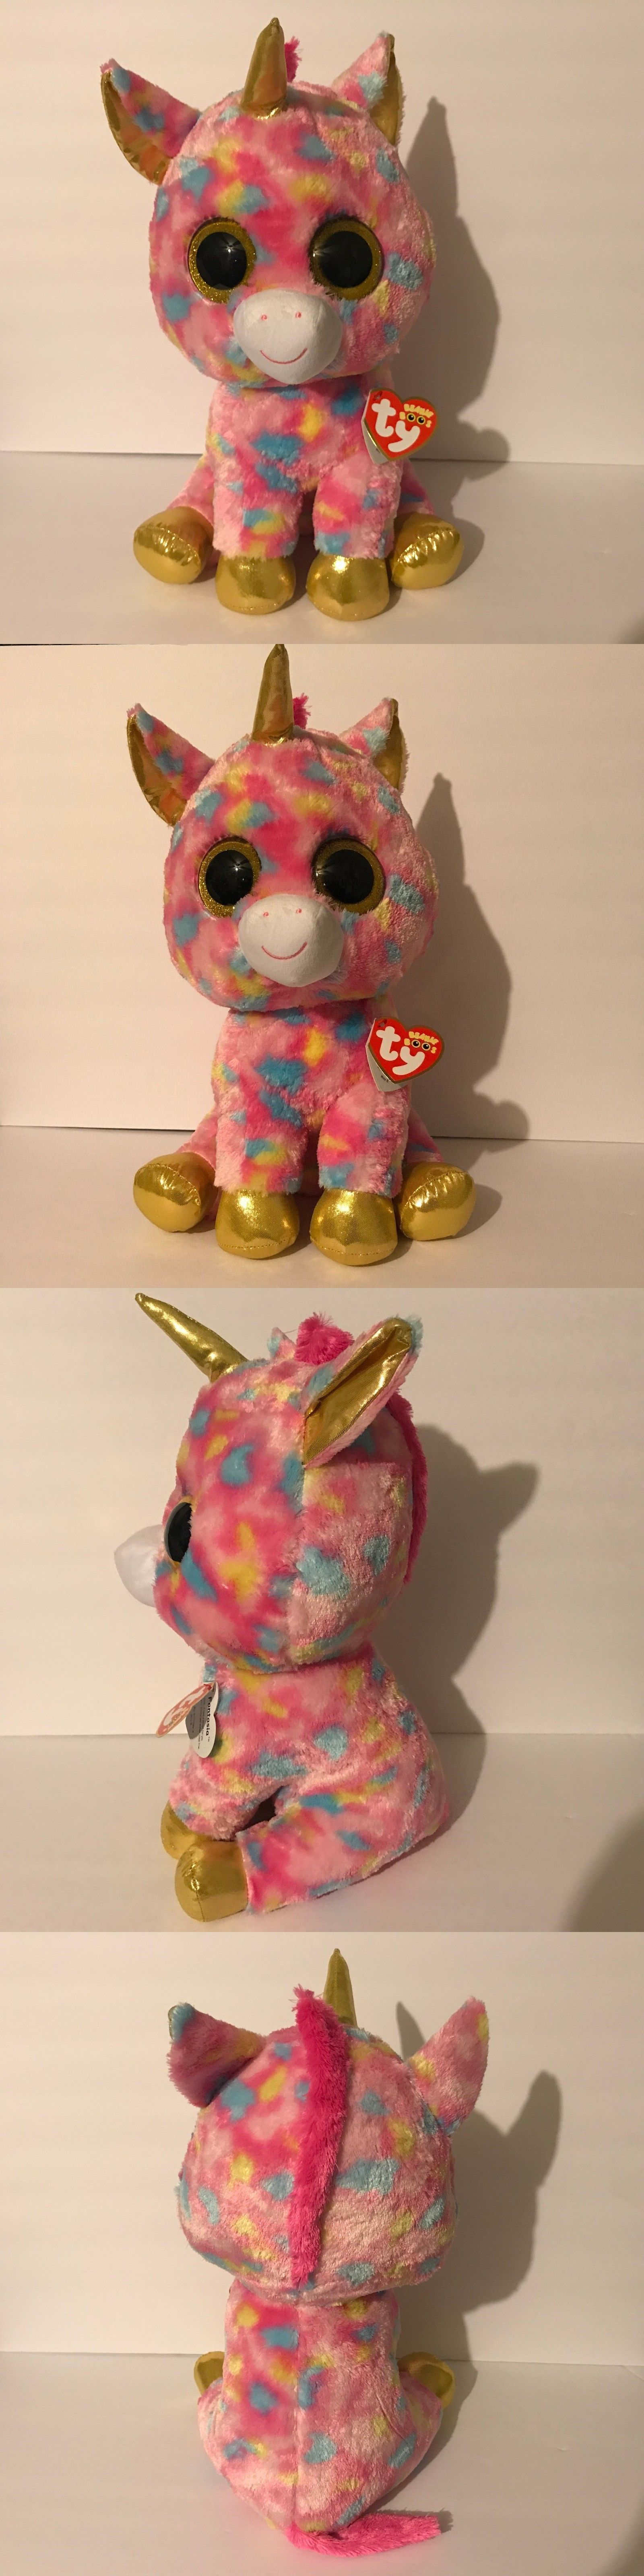 Ty 19203  Ty Beanie Boos - Fantasia The Unicorn (Glitter Eyes) (Large Big  Size - 17 Inch) -  BUY IT NOW ONLY   19.99 on  eBay  beanie  fantasia   unicorn 14c9f3f0ad84